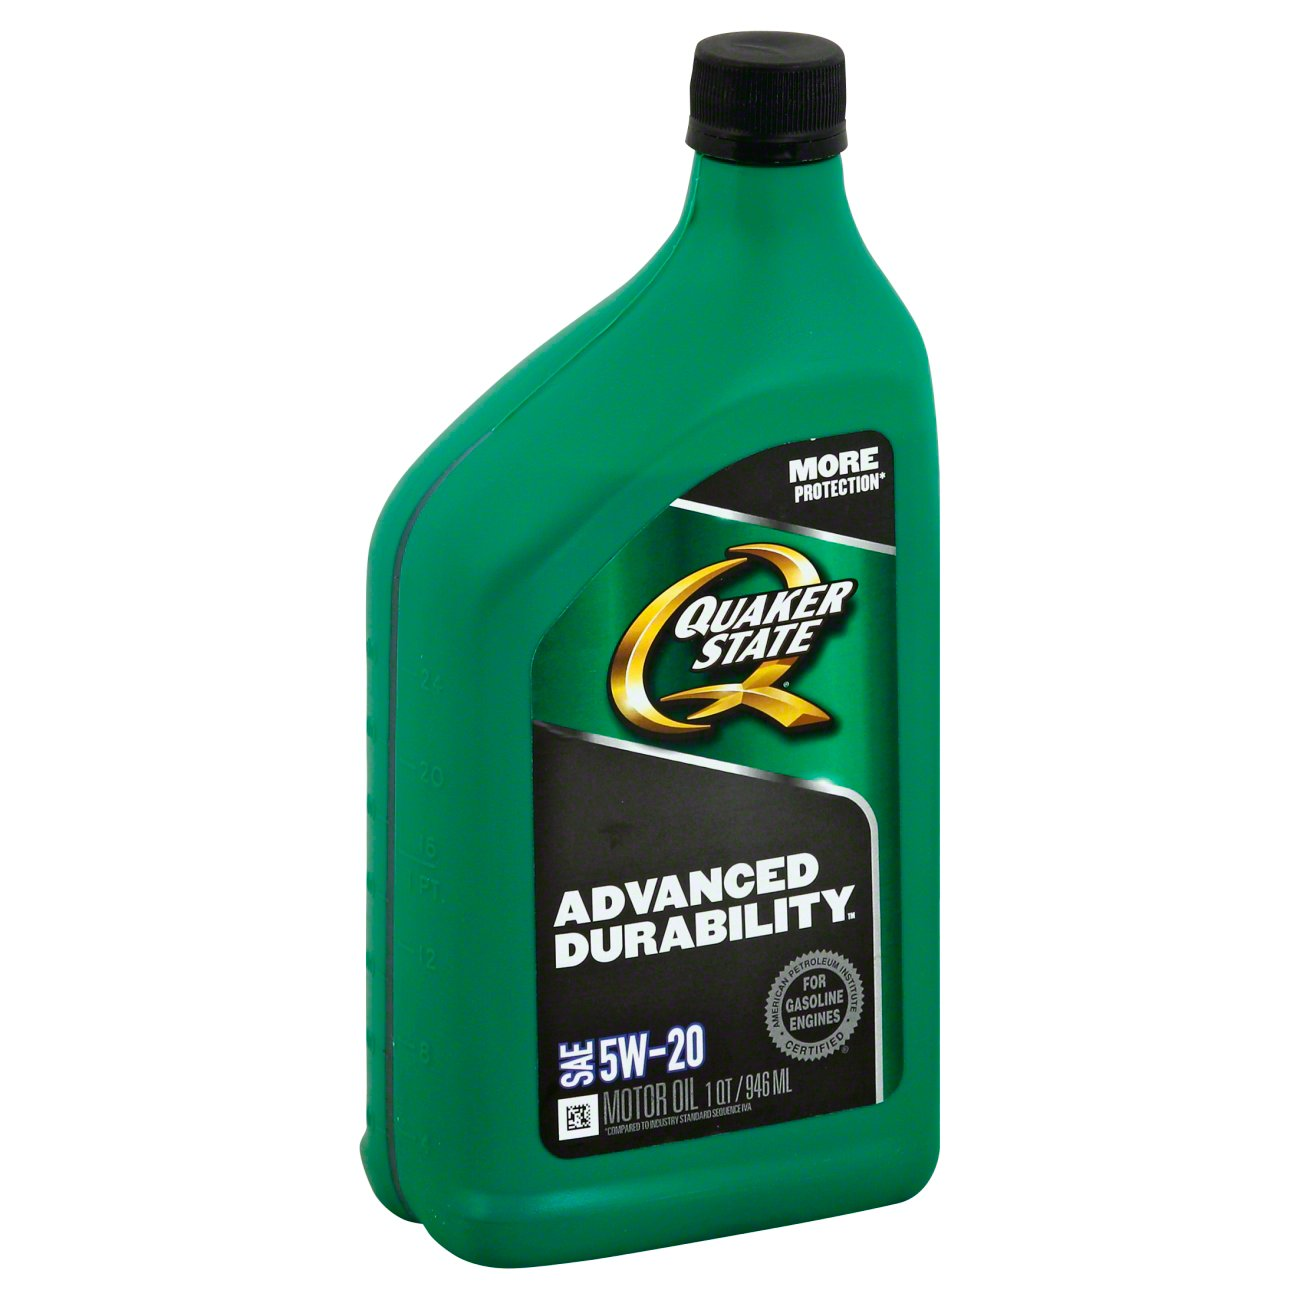 Find every shop in the world selling green earth for Quaker state conventional motor oil